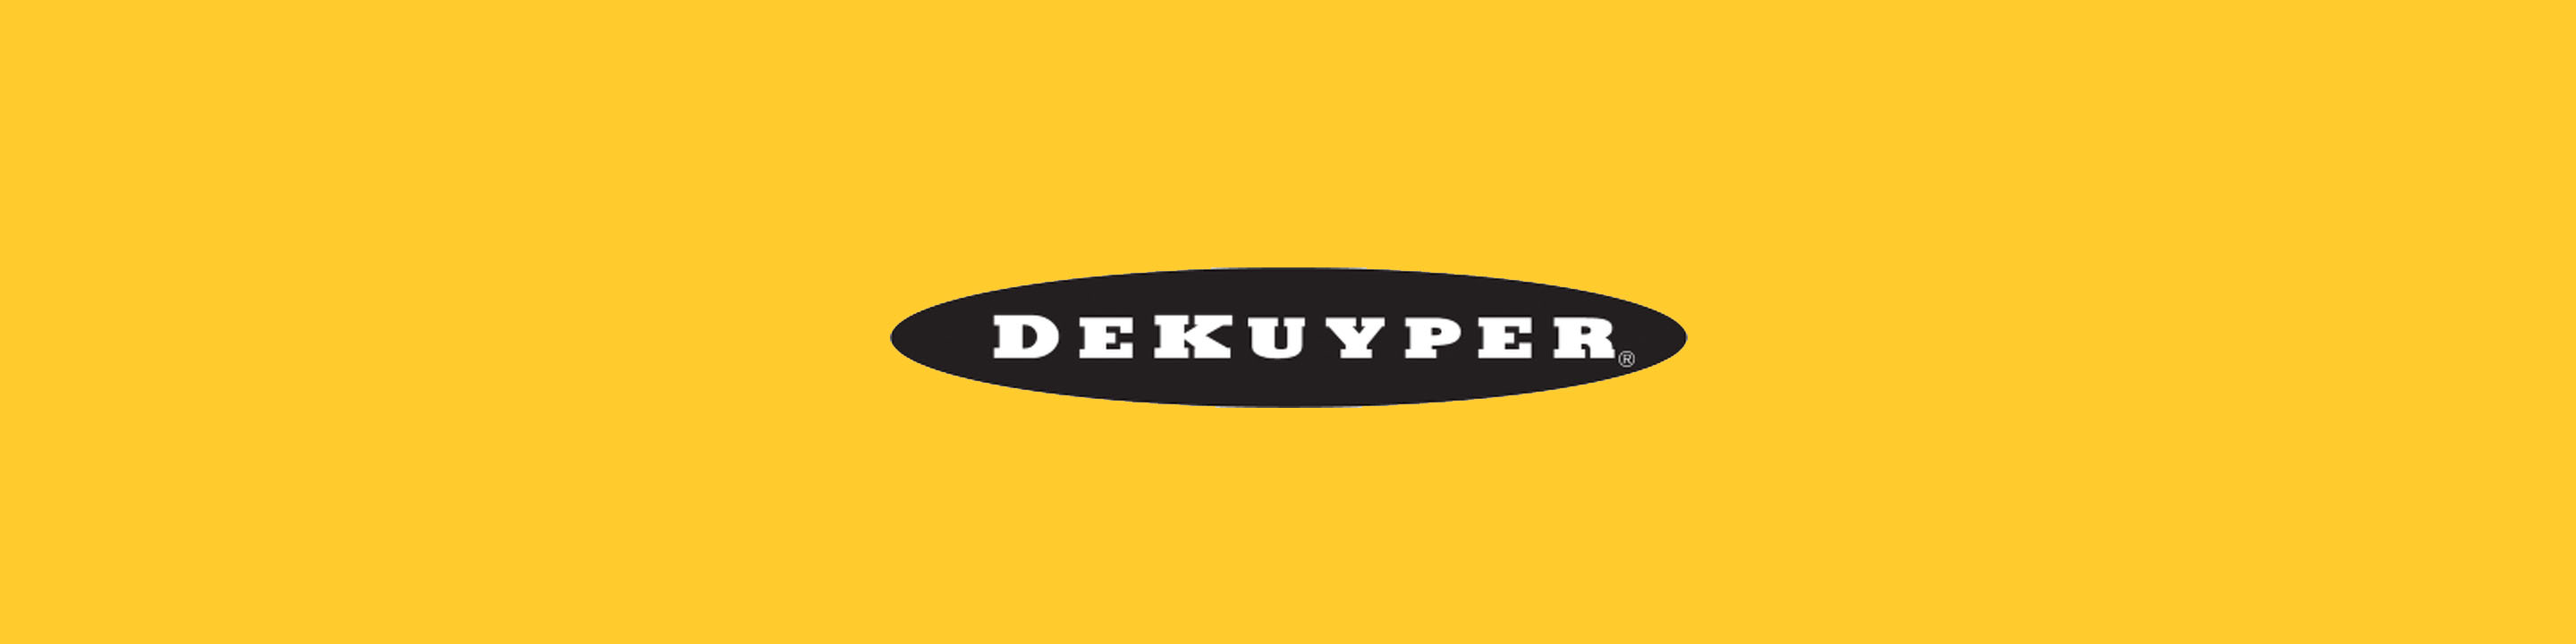 Since 1695, DeKuyper® has been the brand bartenders trust to add color, flavor, and fun to any cocktail.